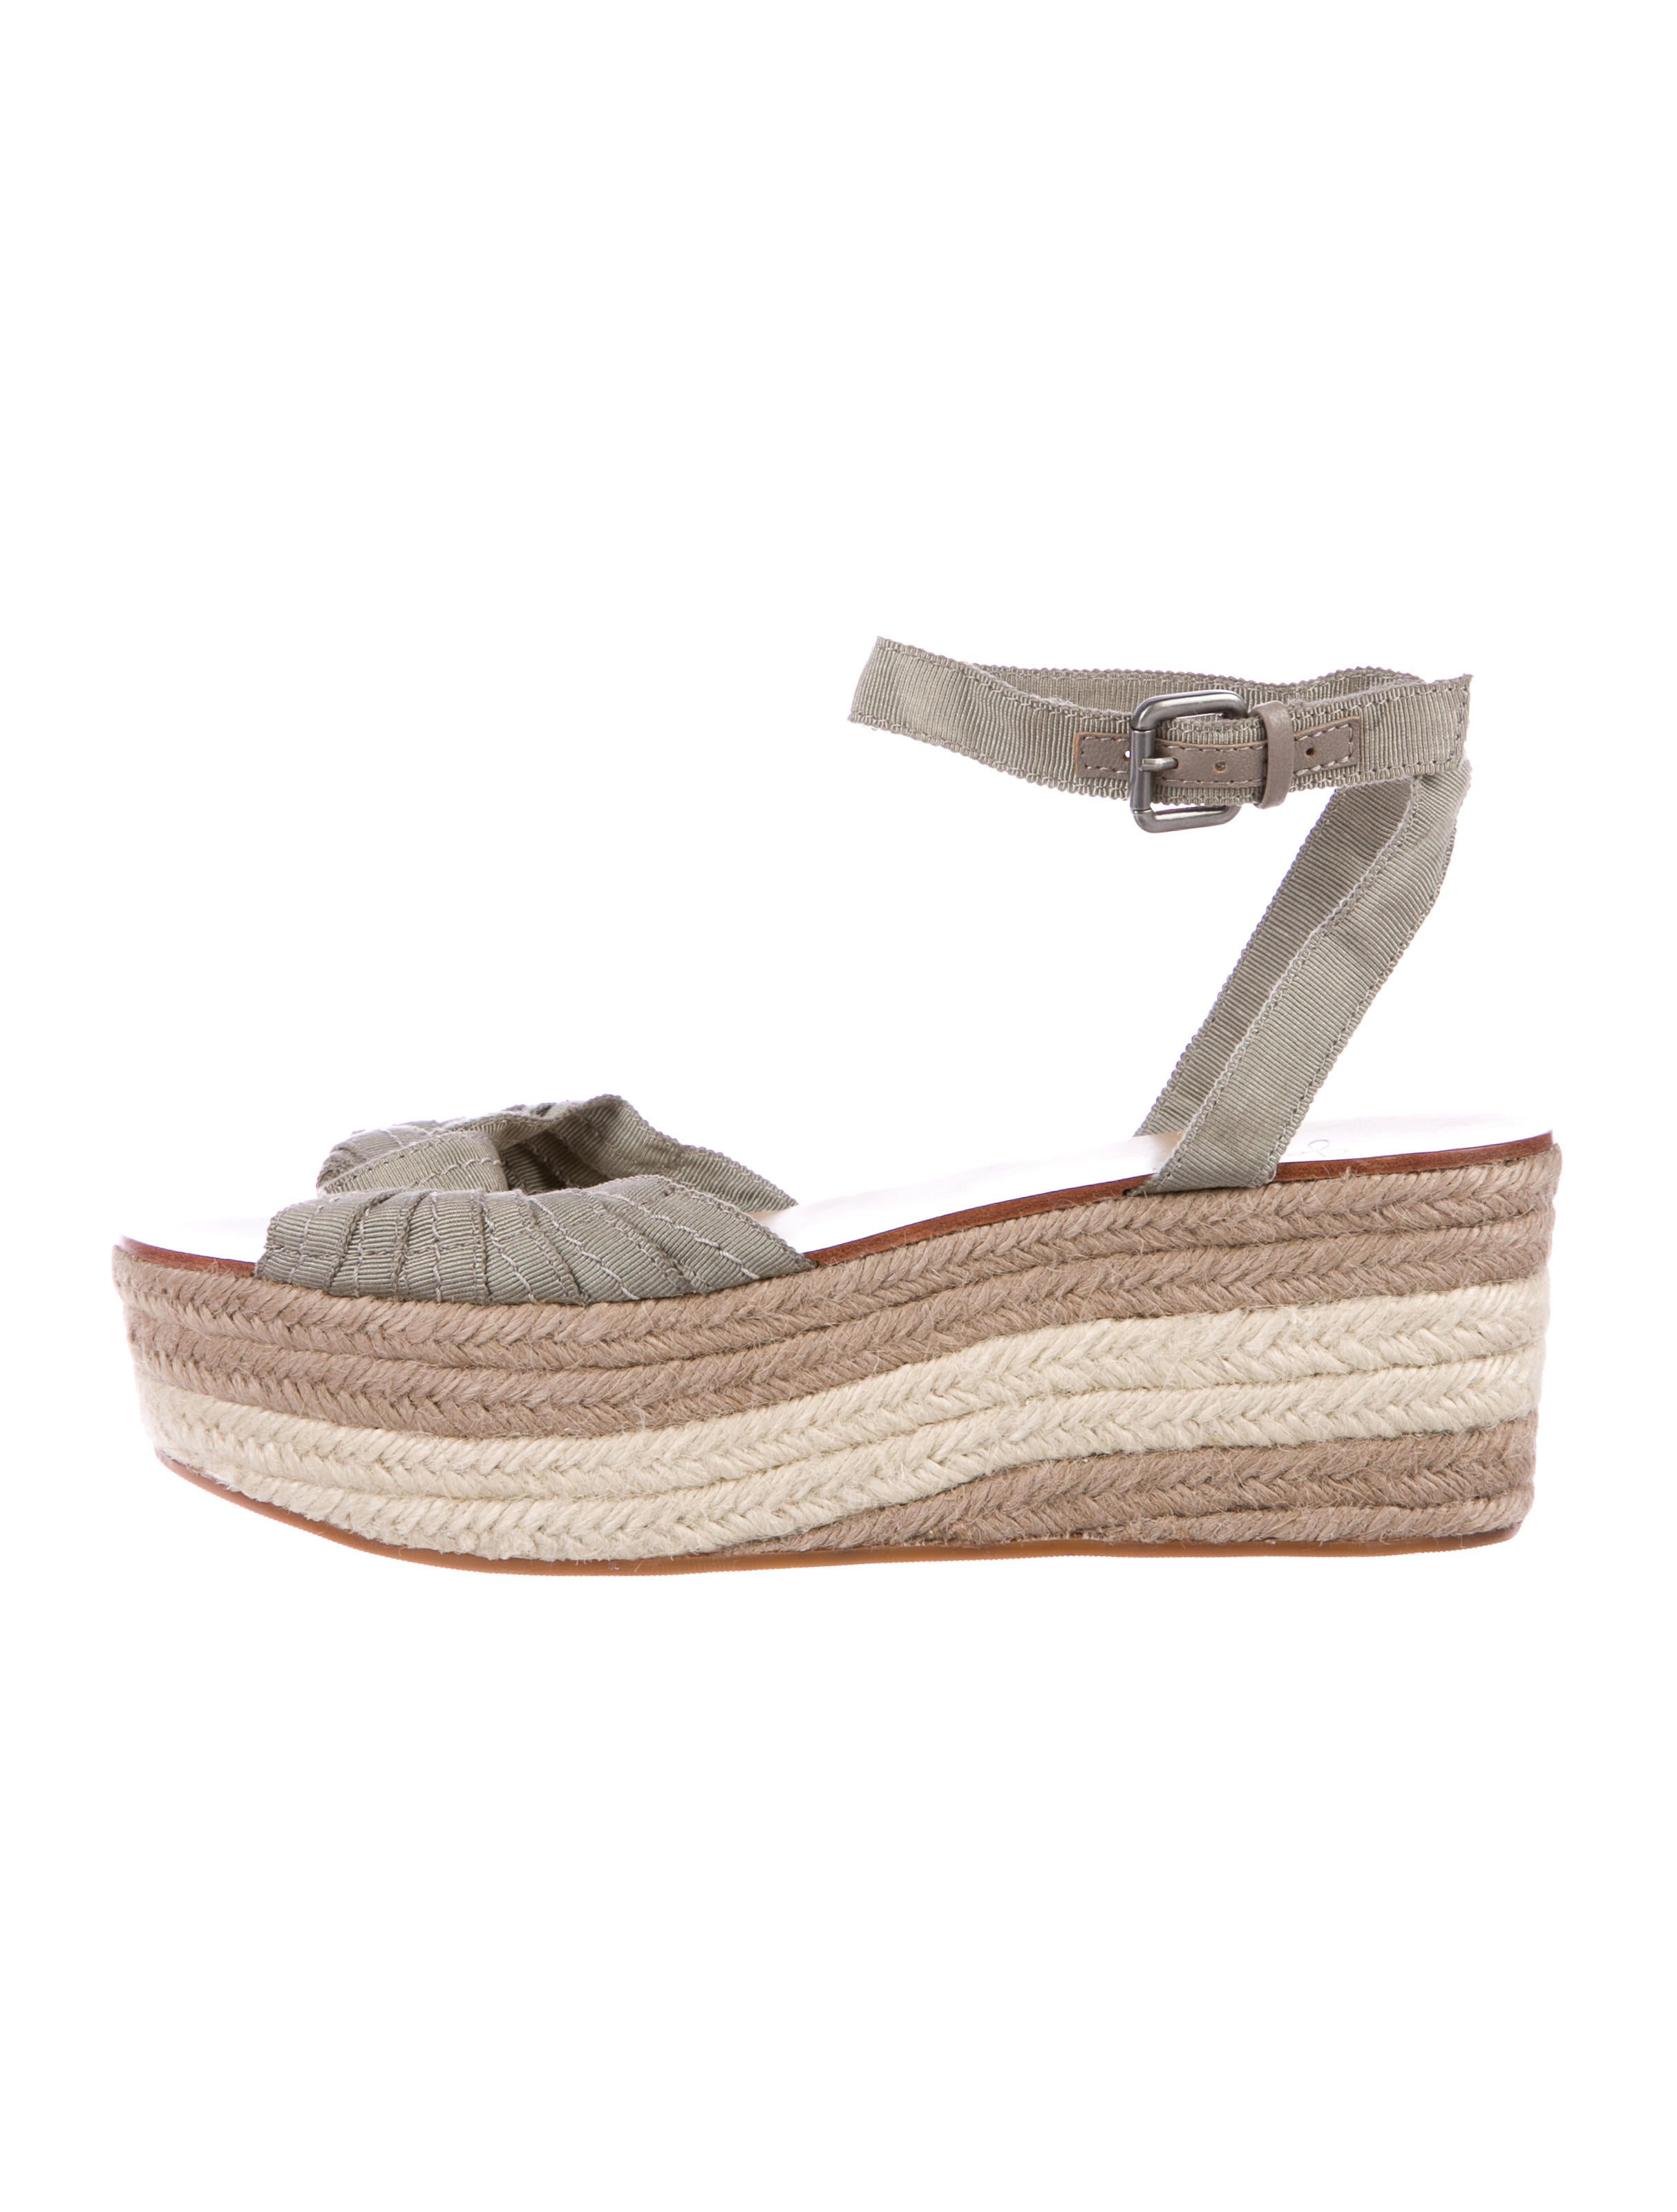 Joie Knotted Espadrille Sandals buy online outlet buy cheap largest supplier buy cheap explore XhDowMjE7